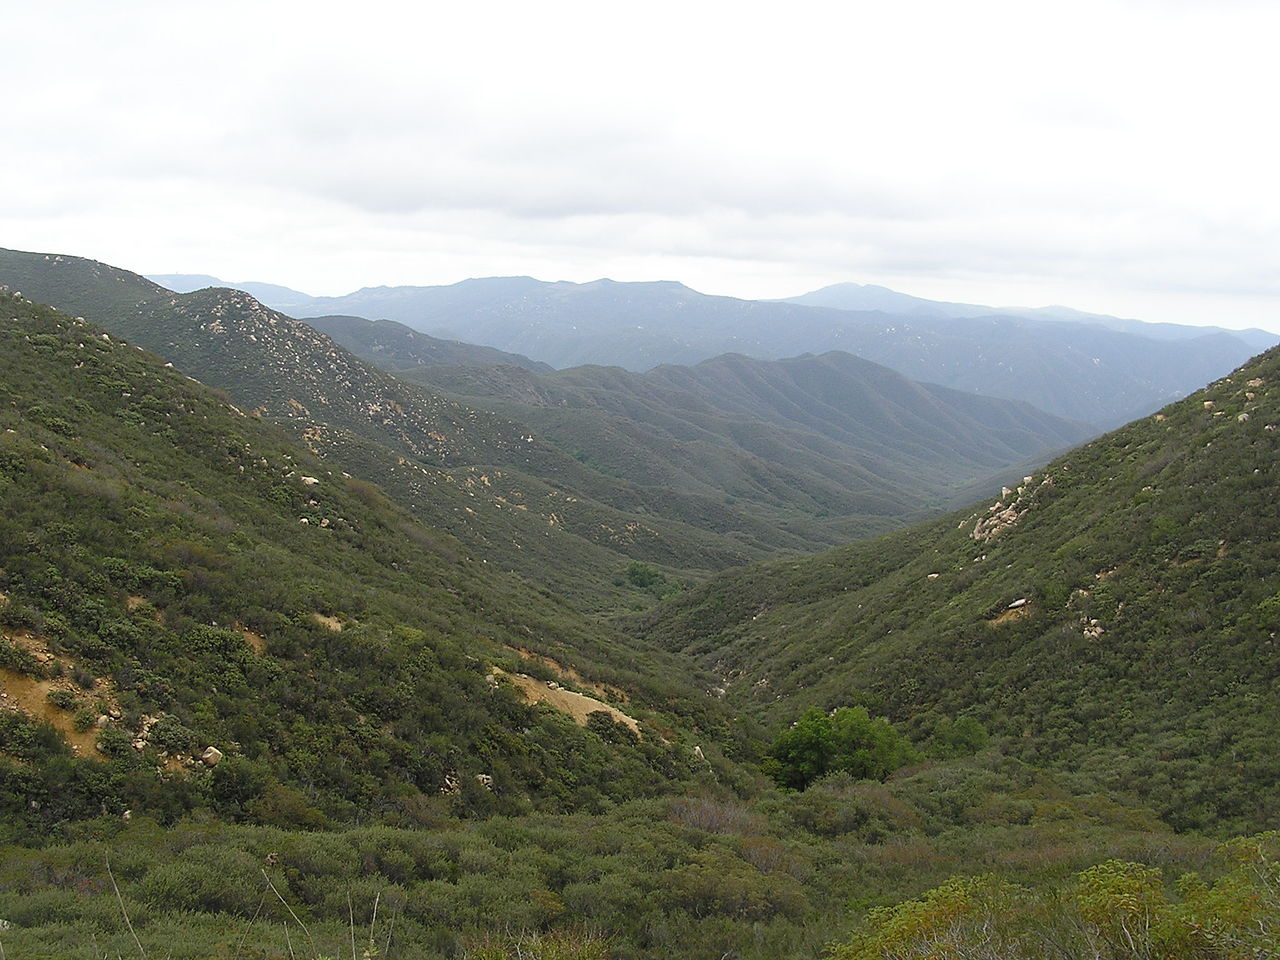 Top Place to Visit In The Santa Ana Mountain-San Mateo Canyon Wilderness